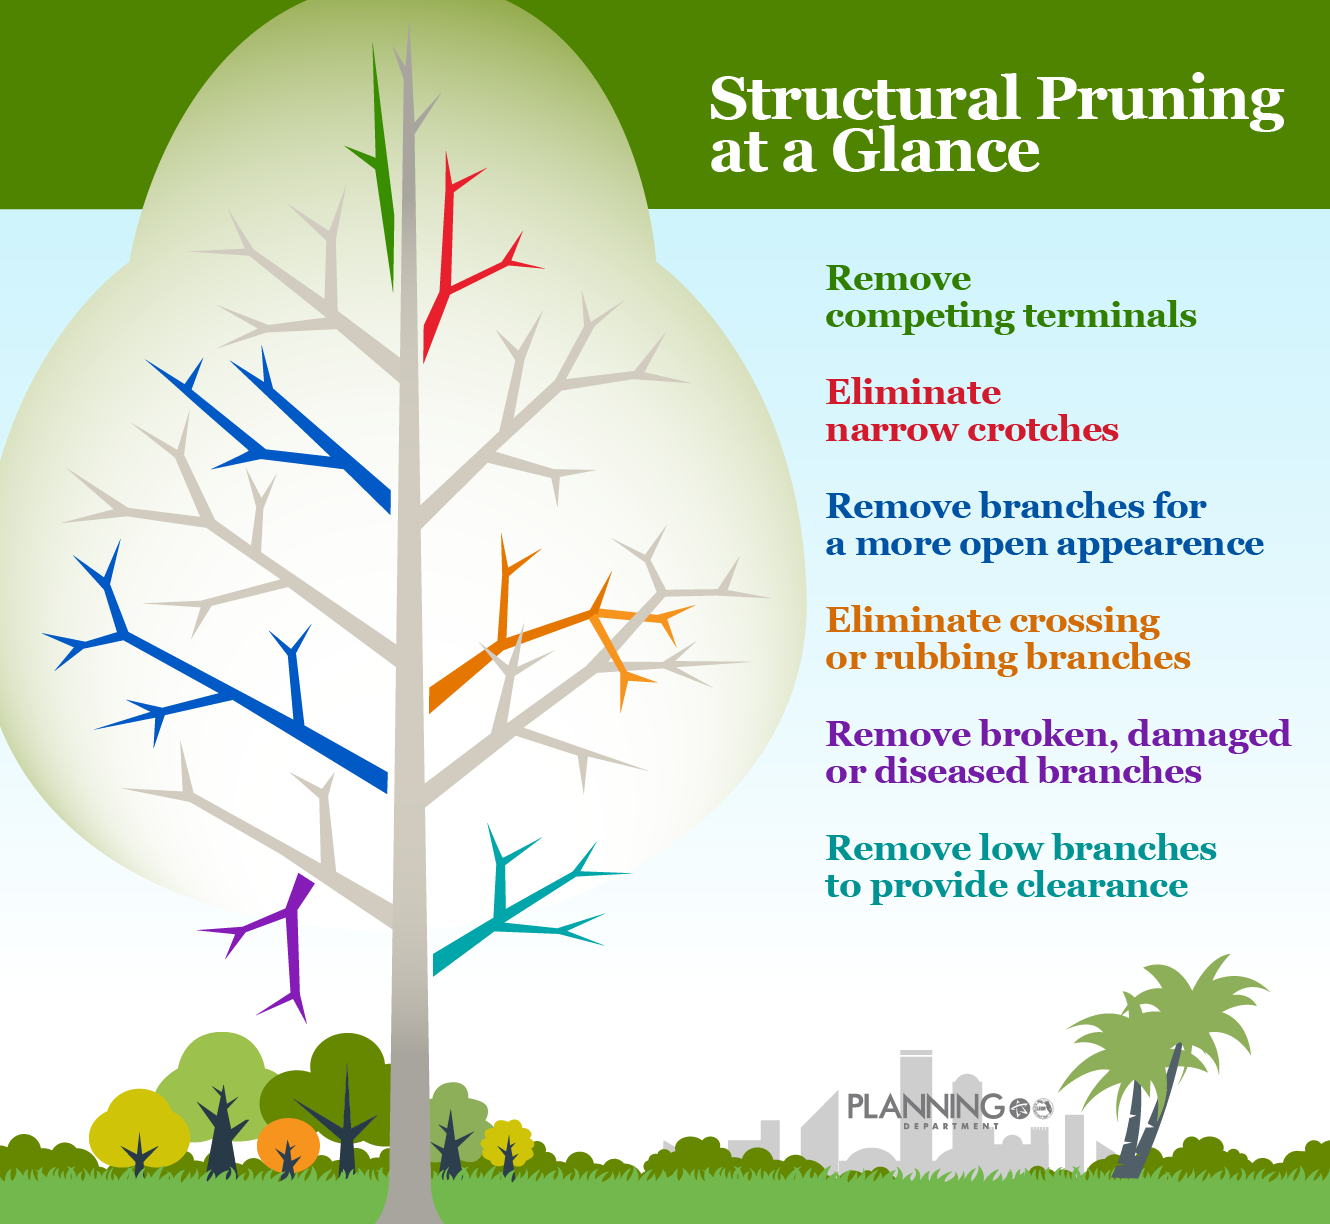 Use this graphic as an at-a-glance guide to help  you as you begin structural pruning.